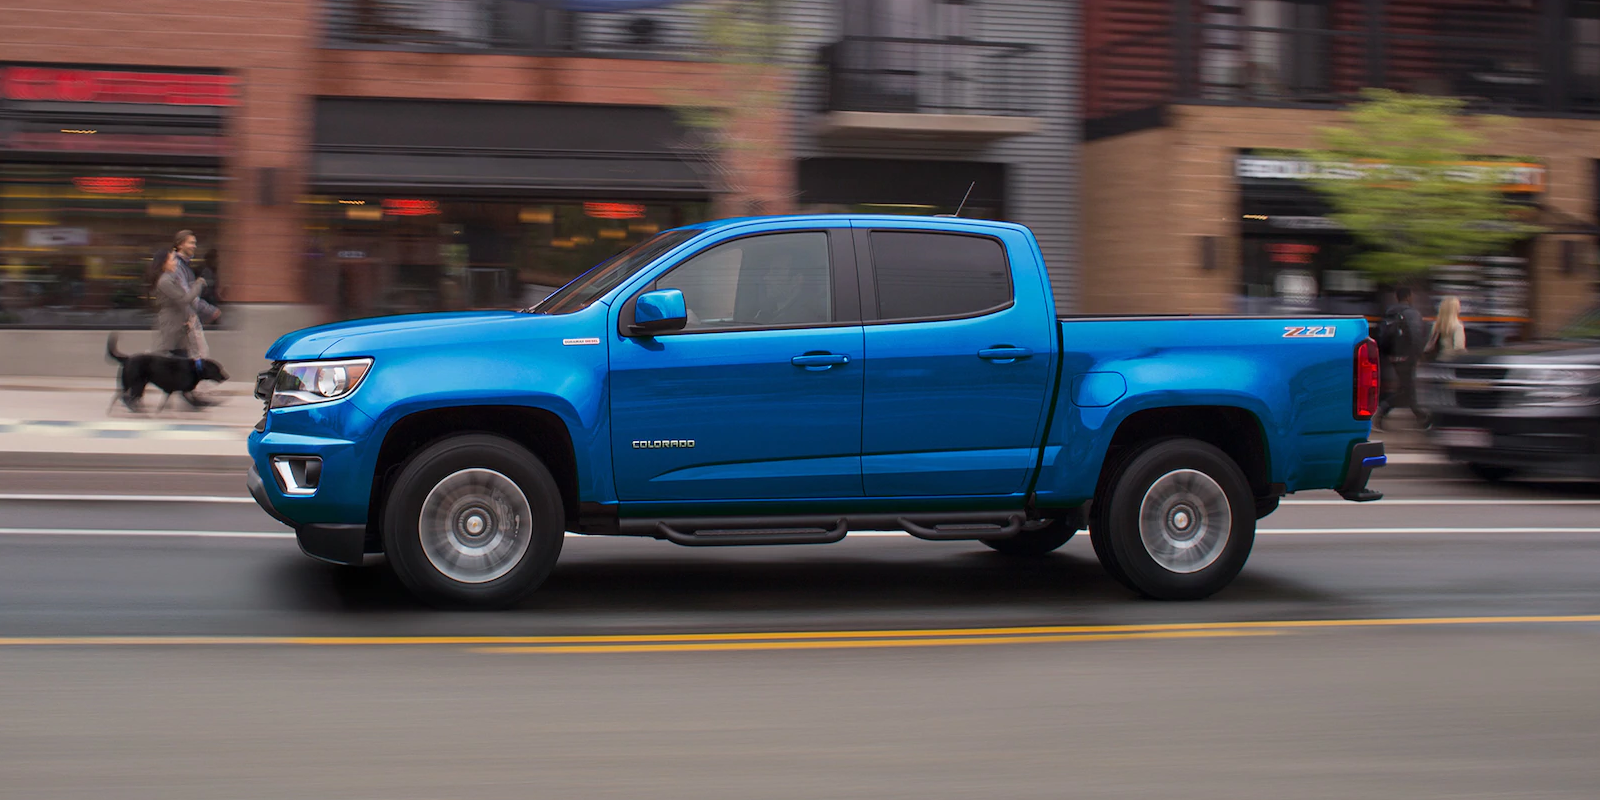 2019 Chevrolet Colorado Blue Exterior Side Profile Picture.png